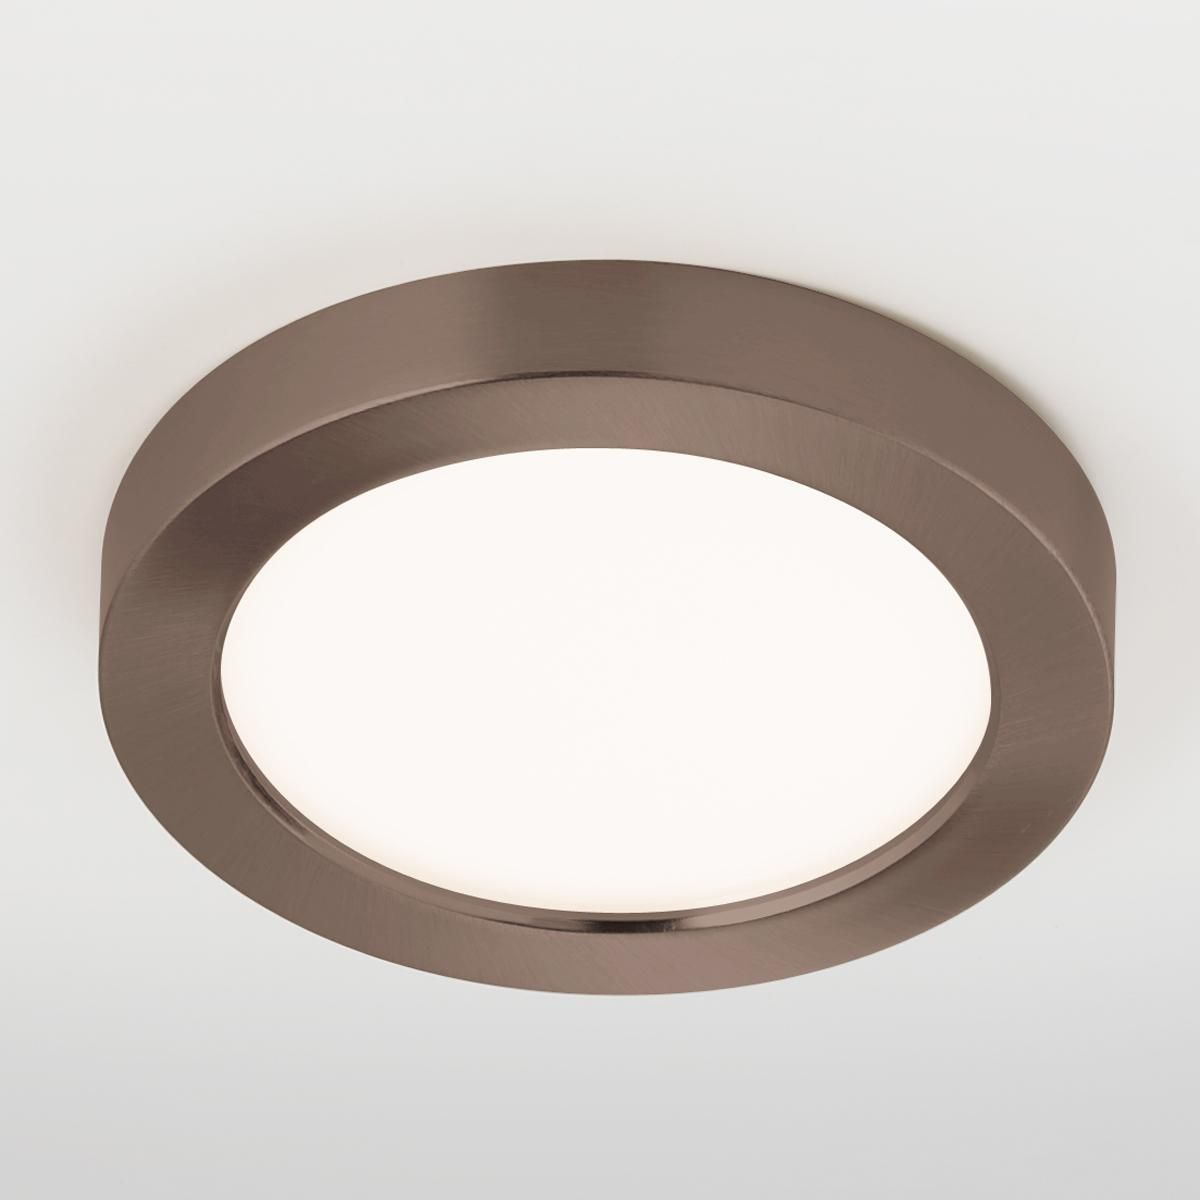 9 led simple round low profile ceiling light ceiling lights 9 led simple round low profile ceiling light mozeypictures Images